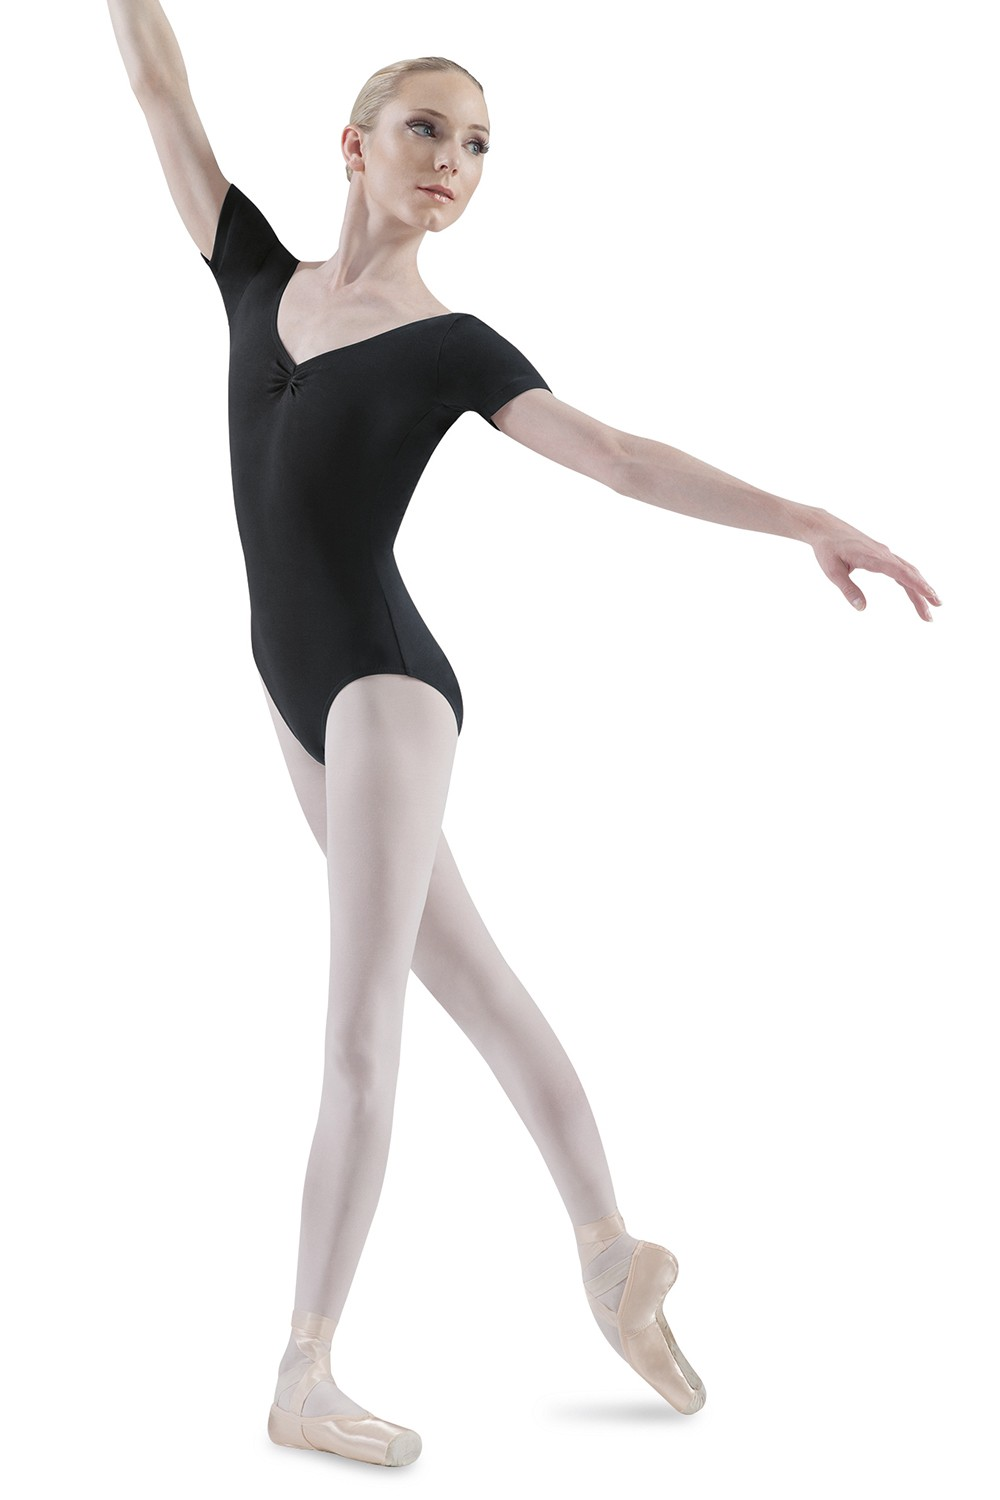 V Neck Short Sleeve Leo Women's Dance Leotards